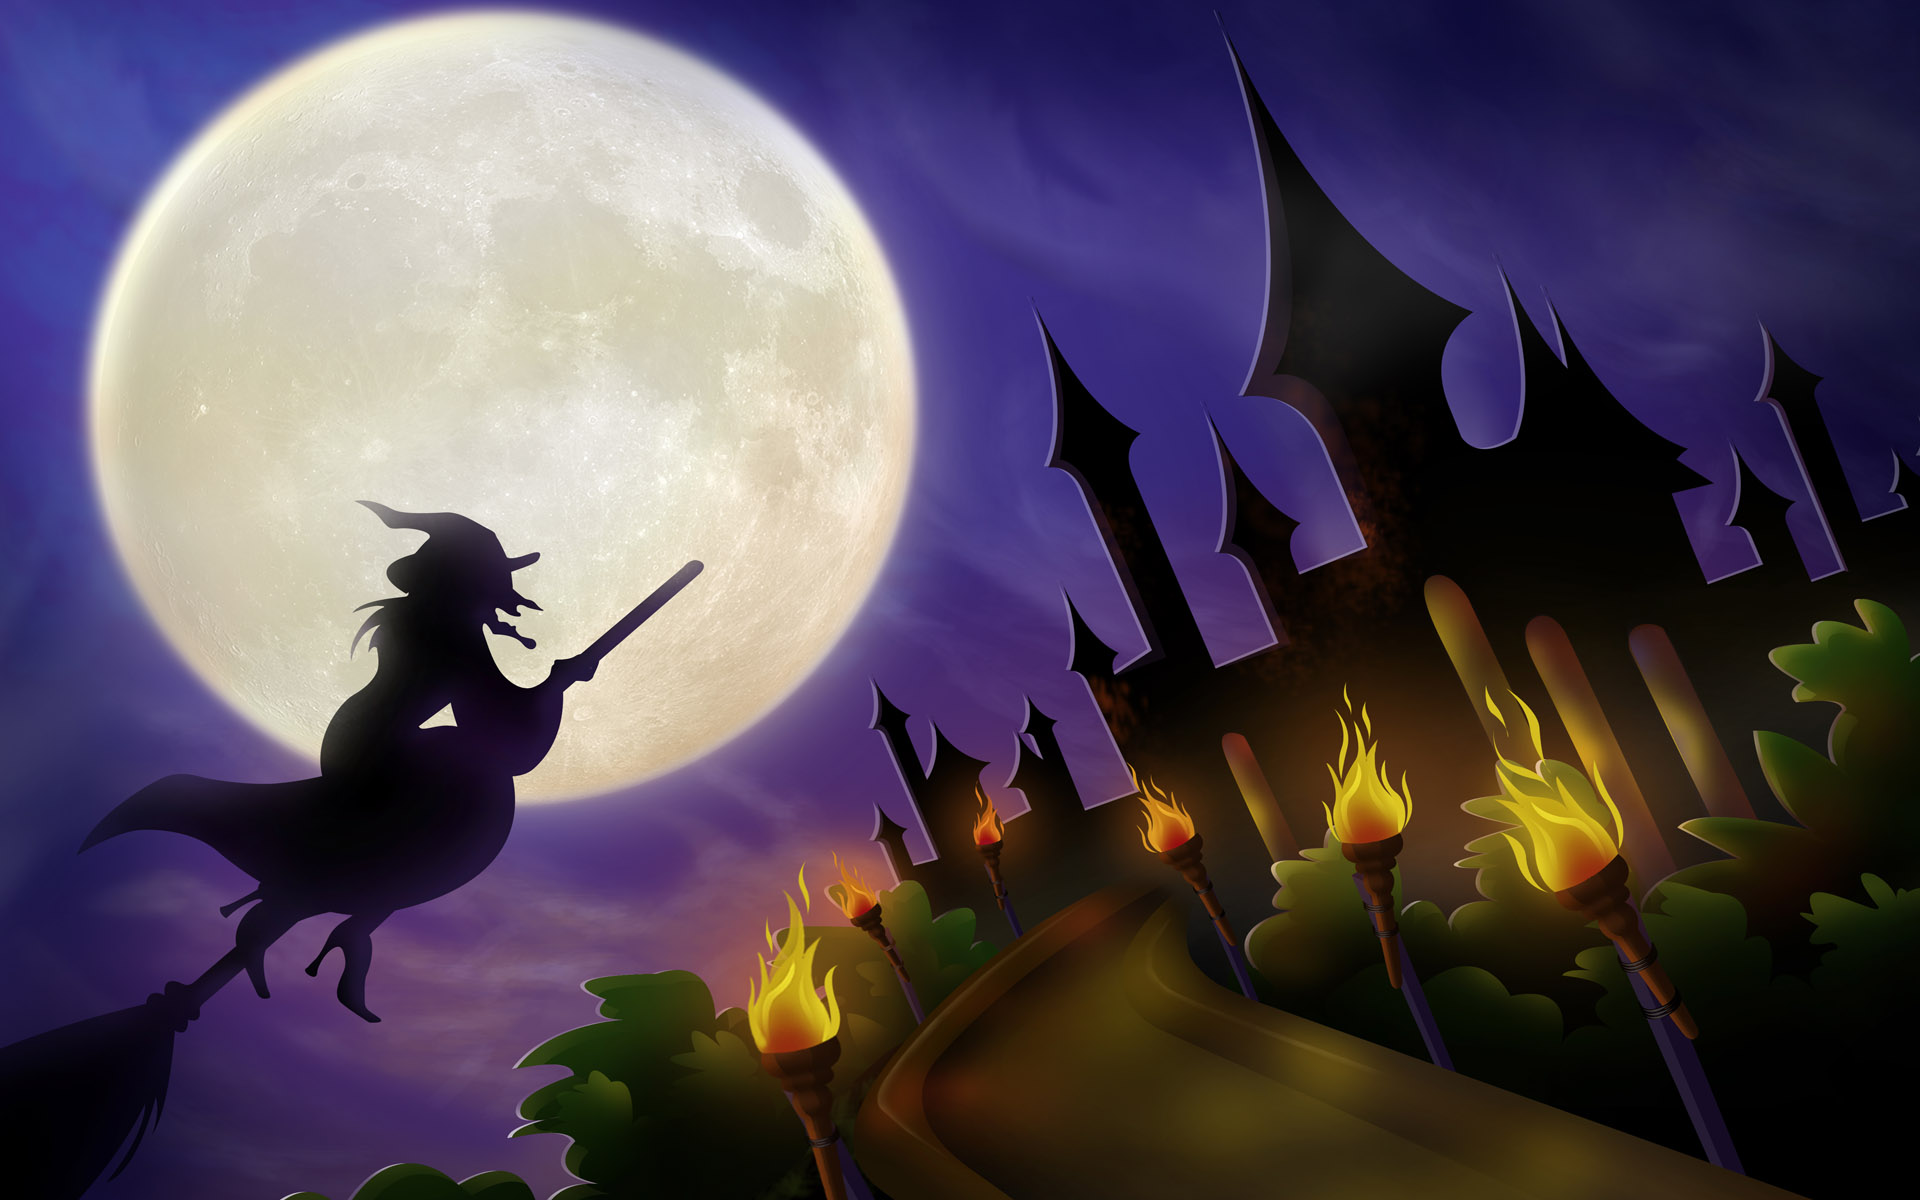 halloween disney desktop wallpaper With Resolutions 1920×1200 Pixel